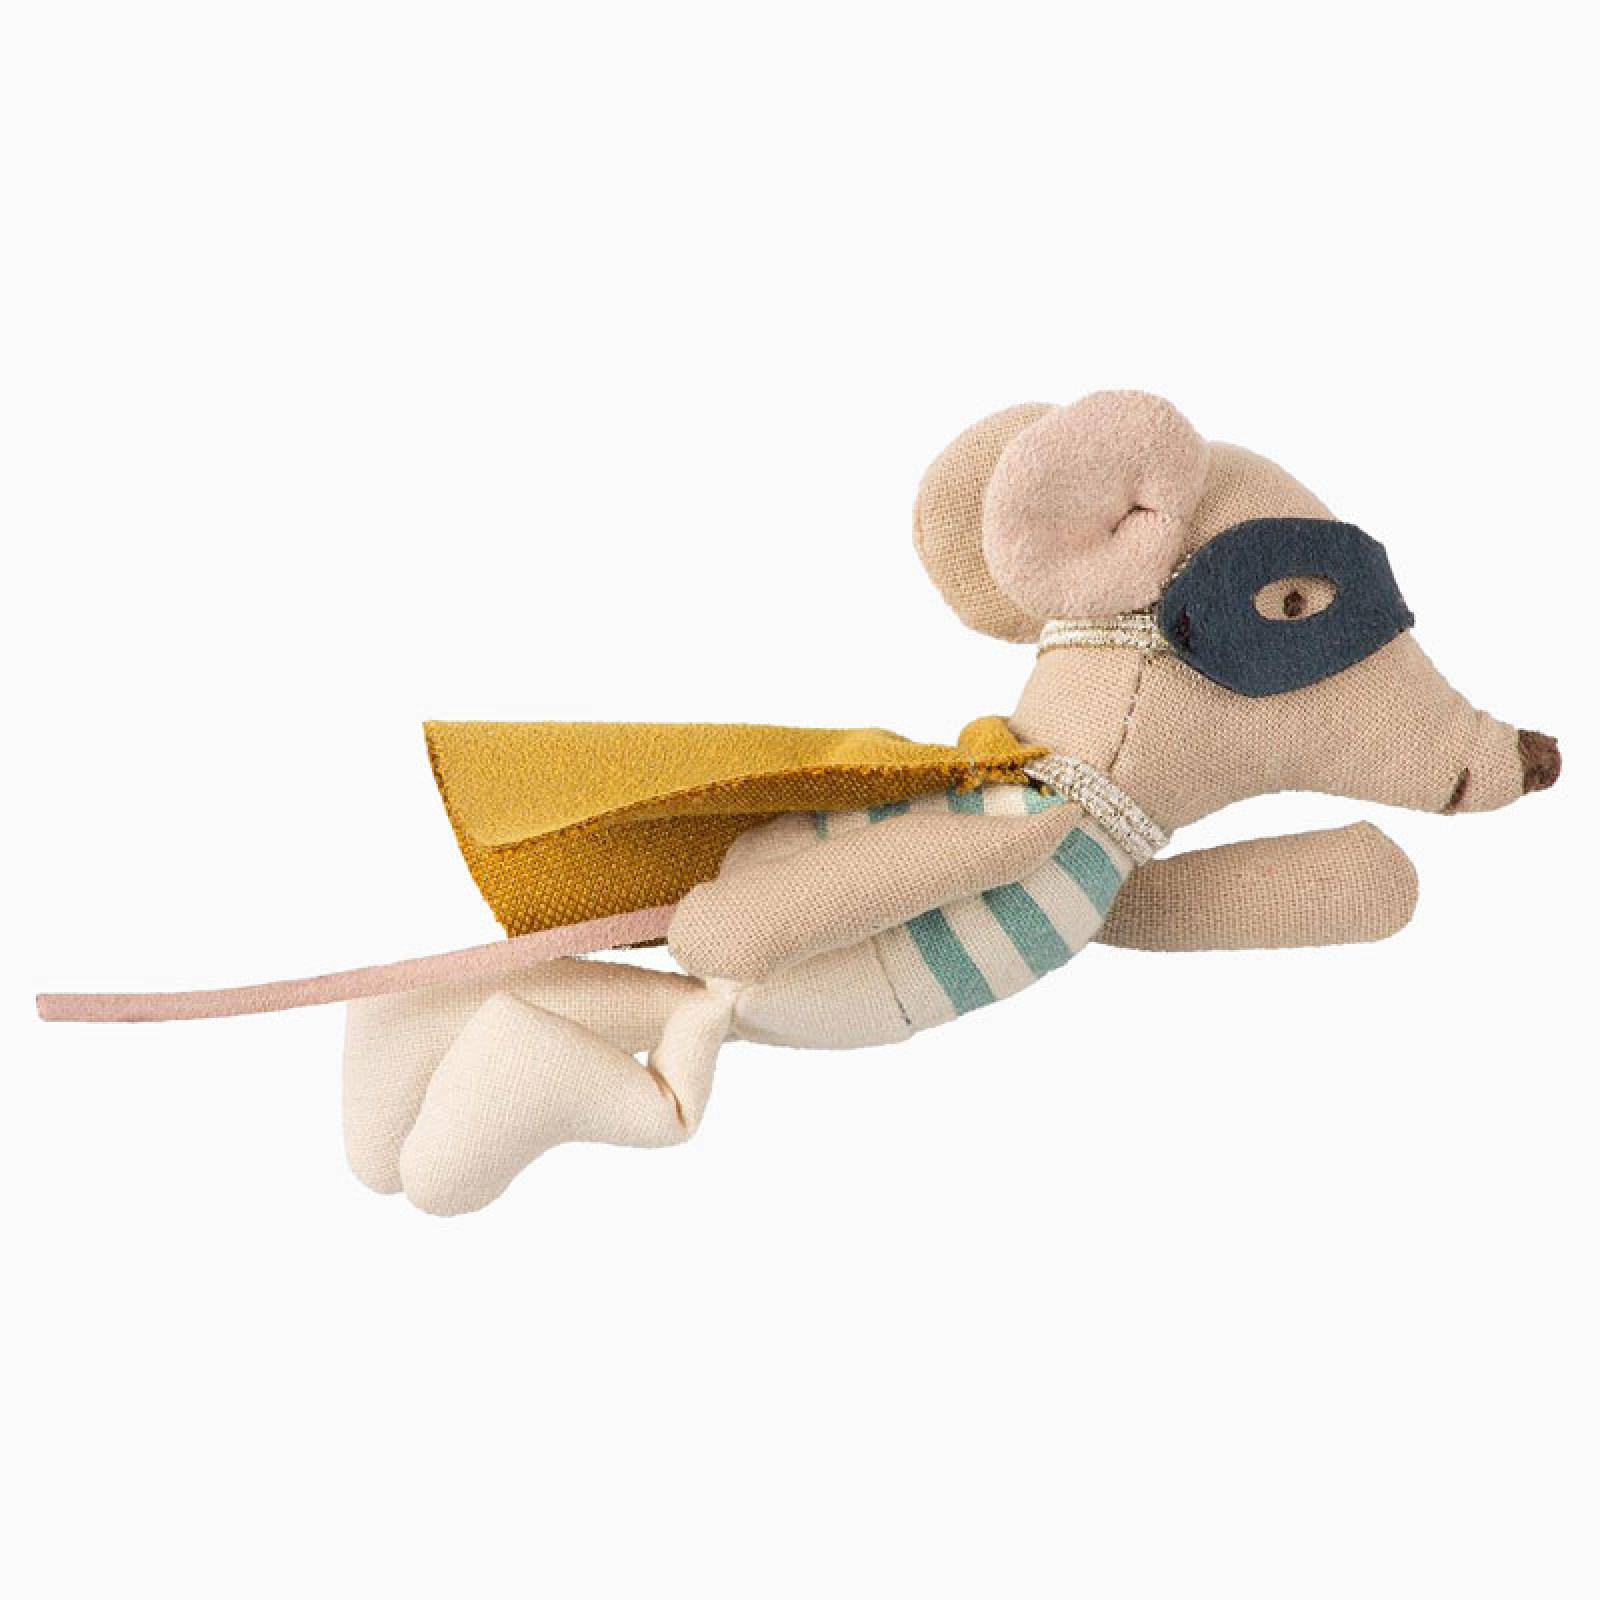 Superhero Mouse Soft Toy In Tin Suitcase By Maileg 0+ thumbnails